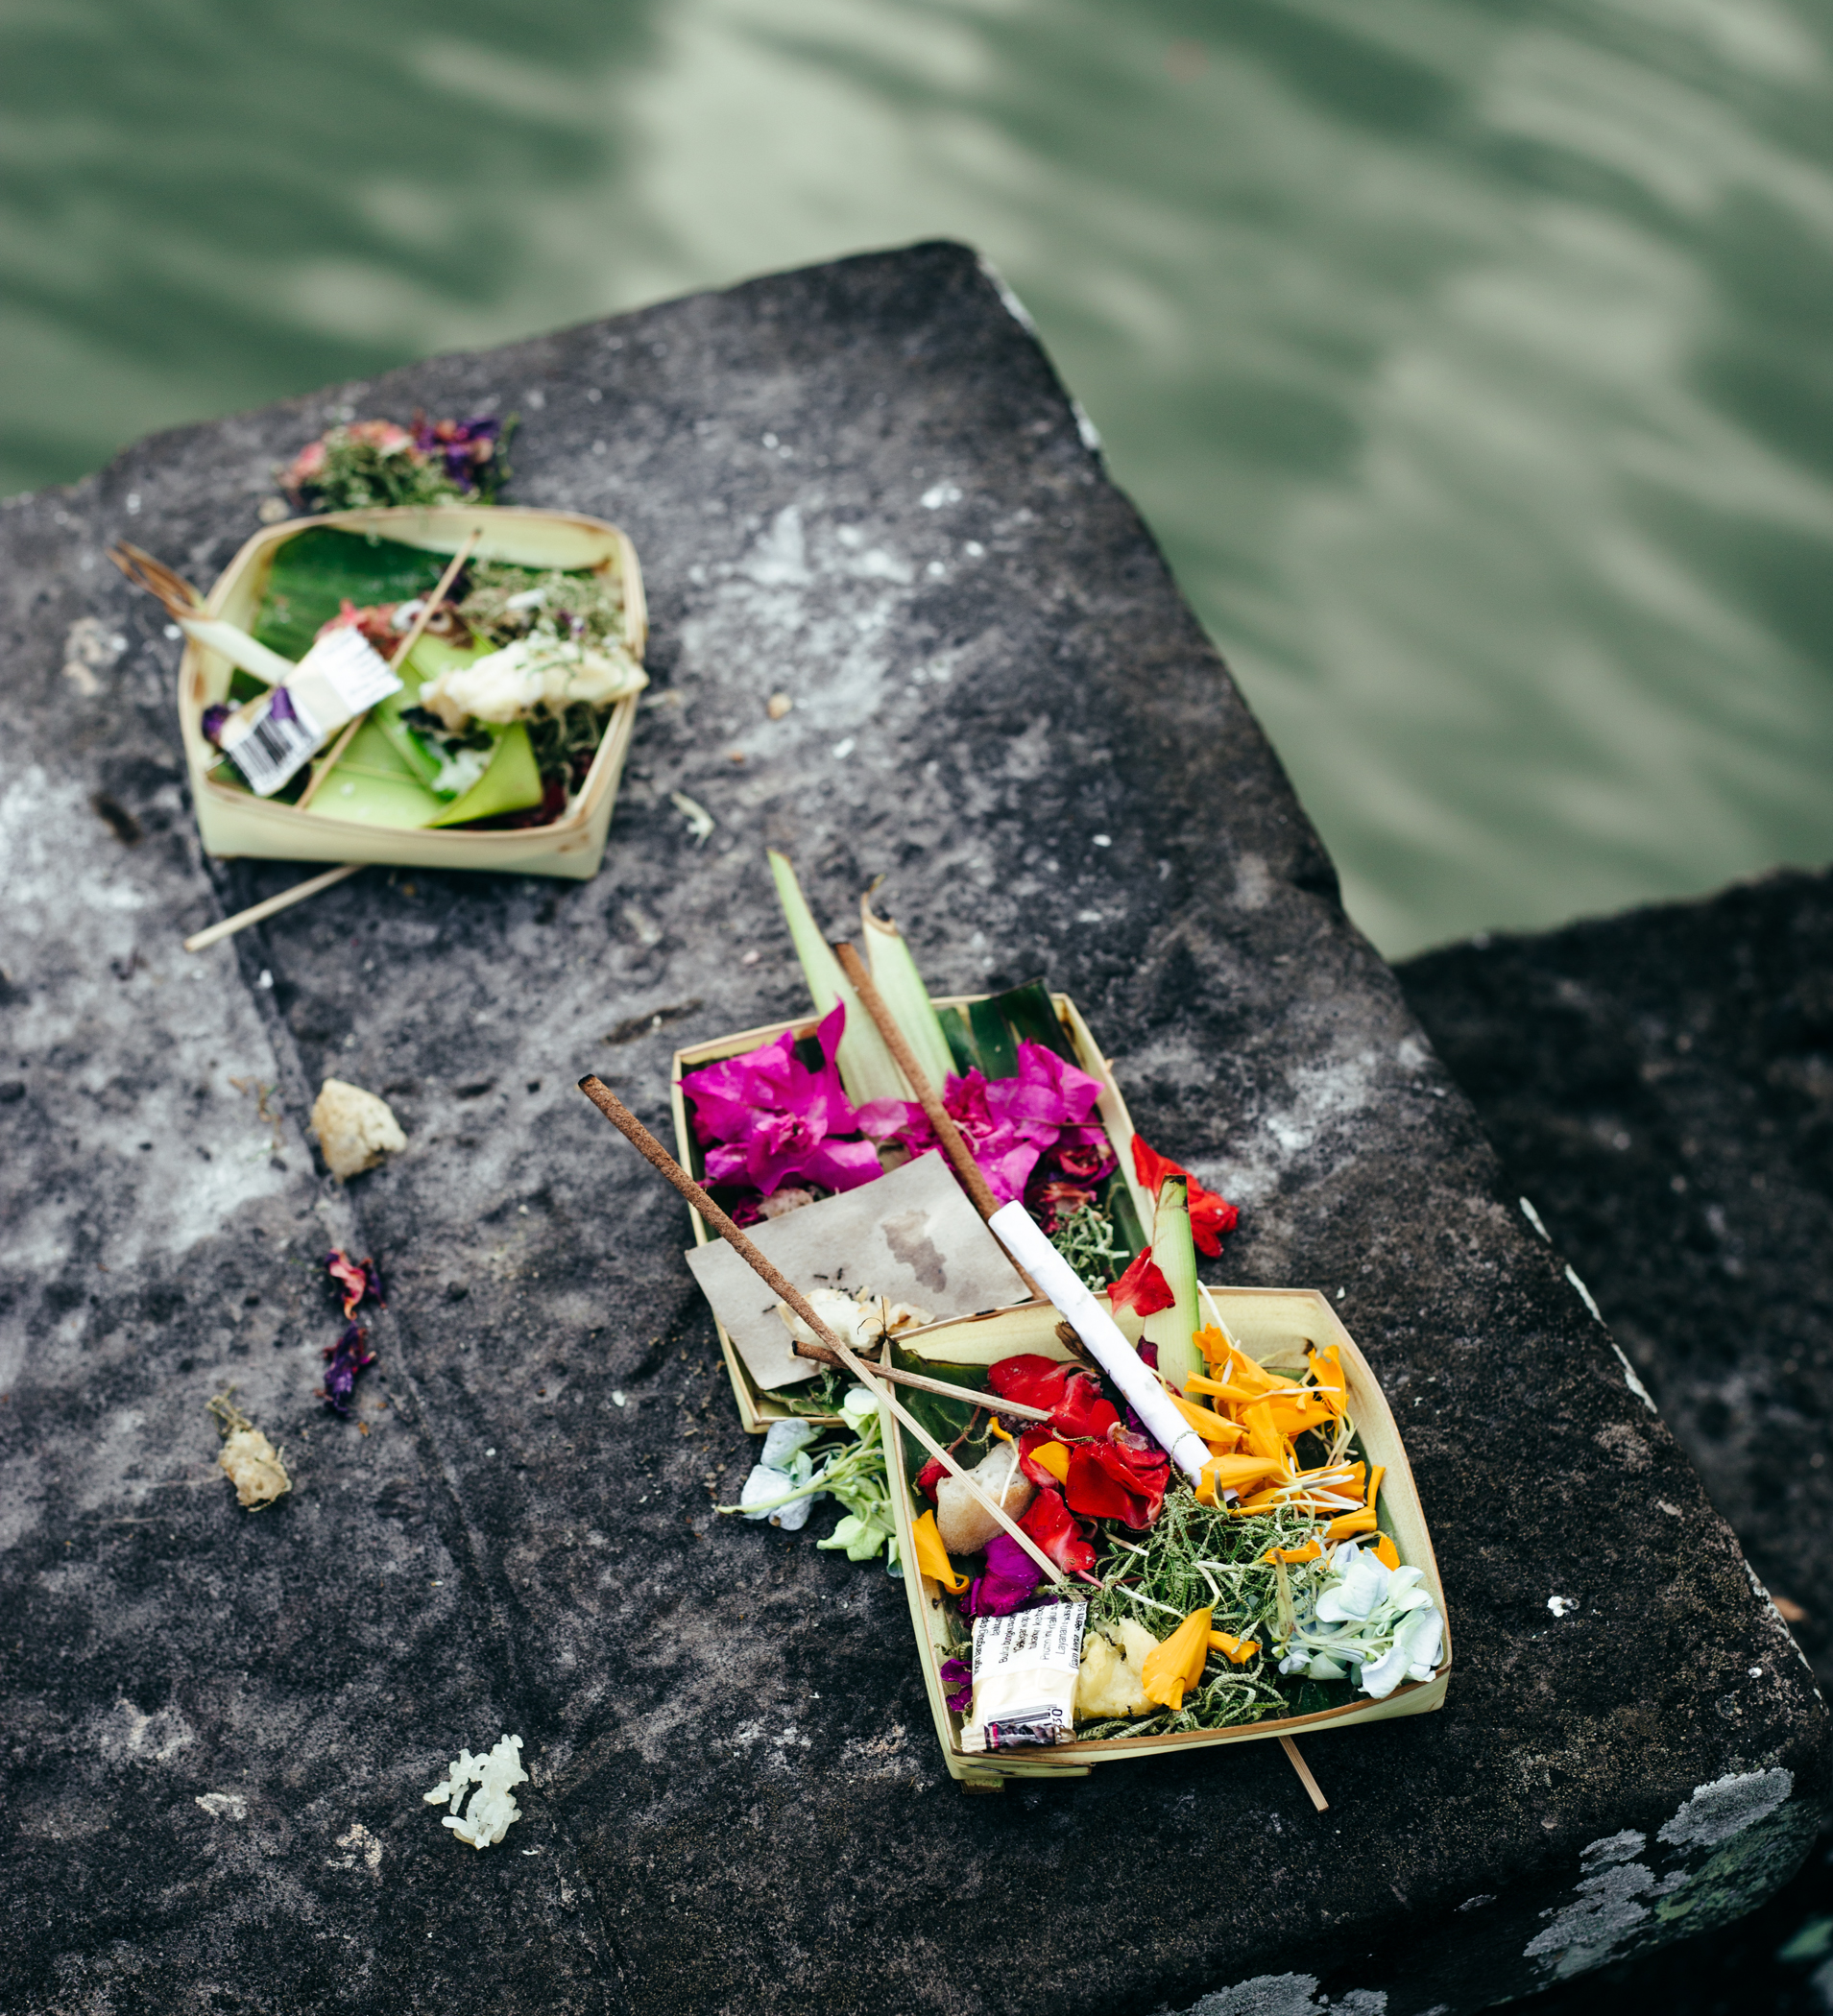 Offering by the lake